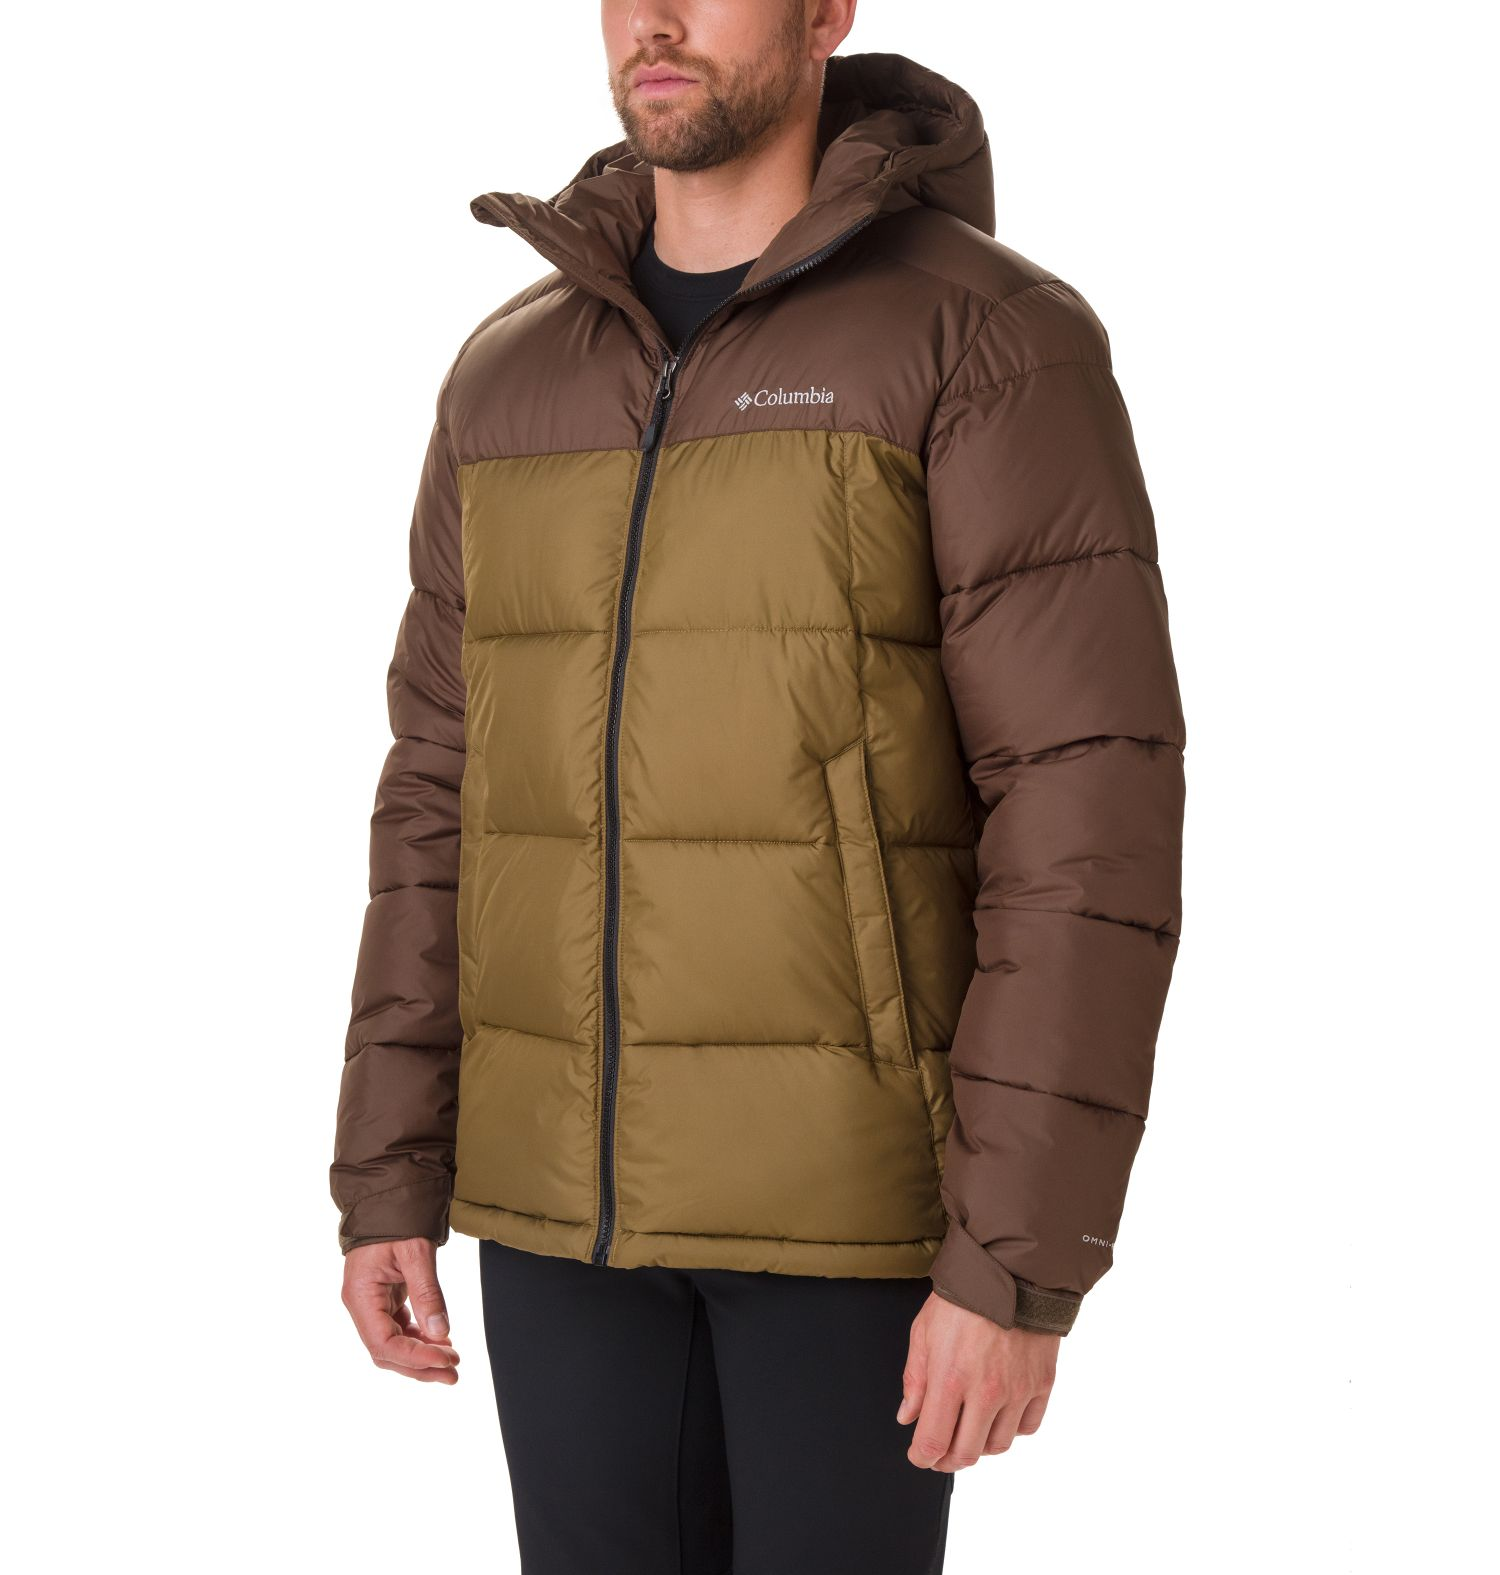 CAZADORA PIKE LAKE HOODED STORM-LITE DP II 100% POLYESTER Omni.HEAT THERMAL REFLECTIVE THERMARATOR WATER RESISTANT OLIVE BROWN/OLIVE GREEN